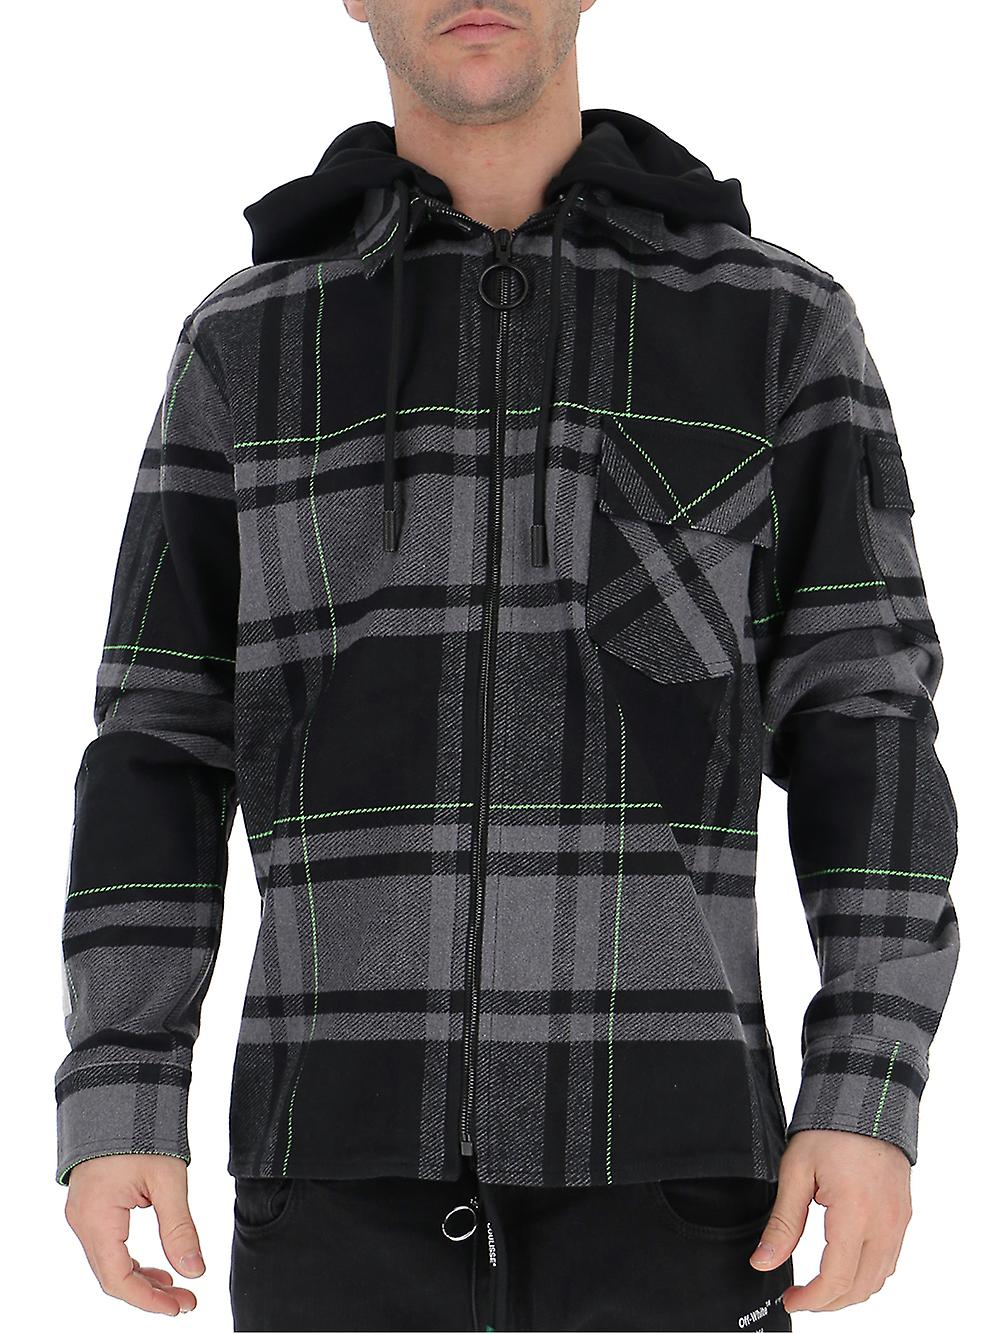 low priced 0288f a96d7 Grauer Wollpullover Off-White